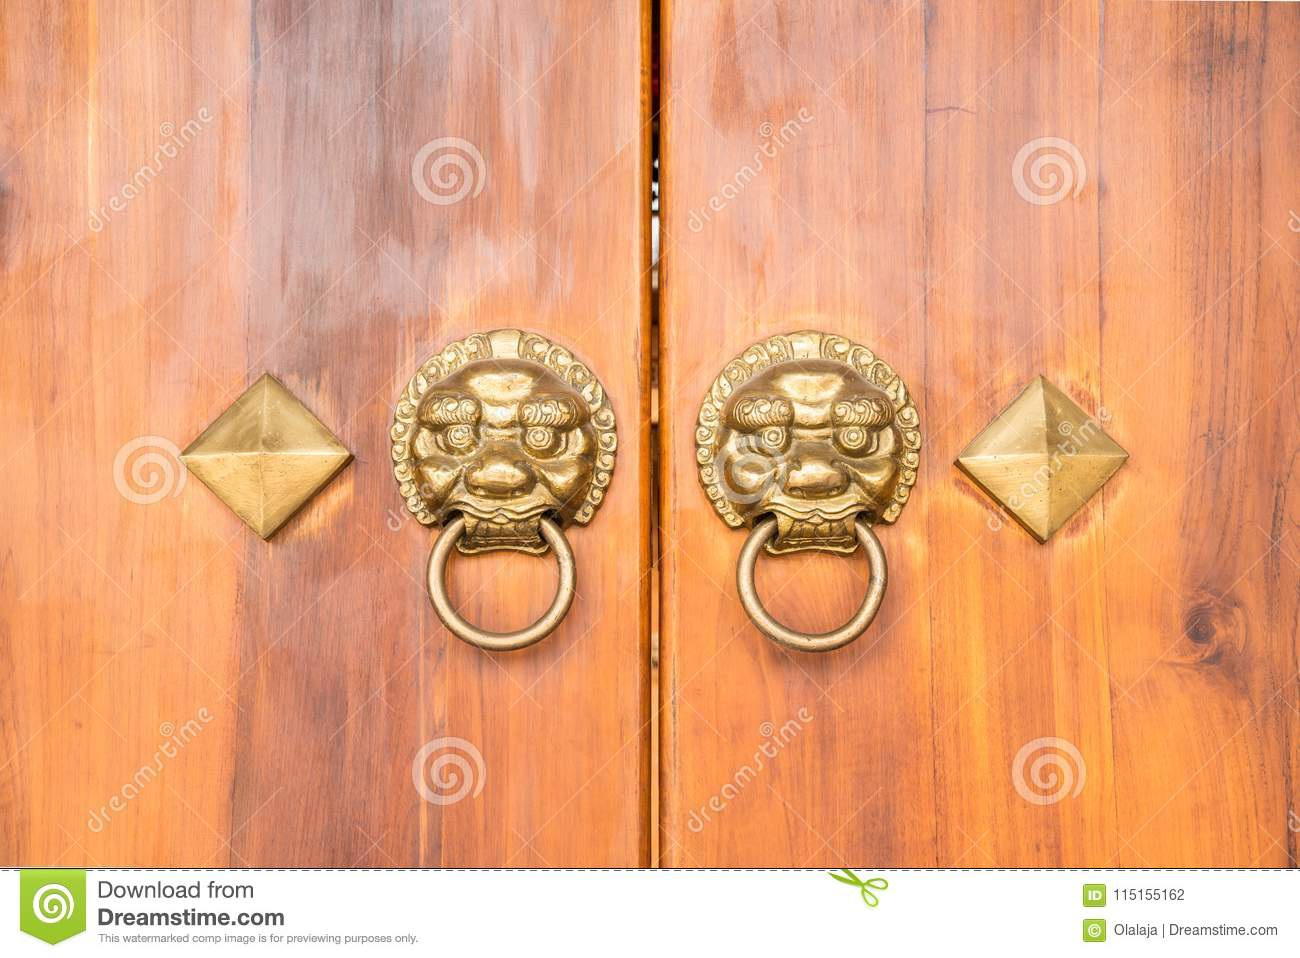 Old Chinese wooden door style with lion head knocker